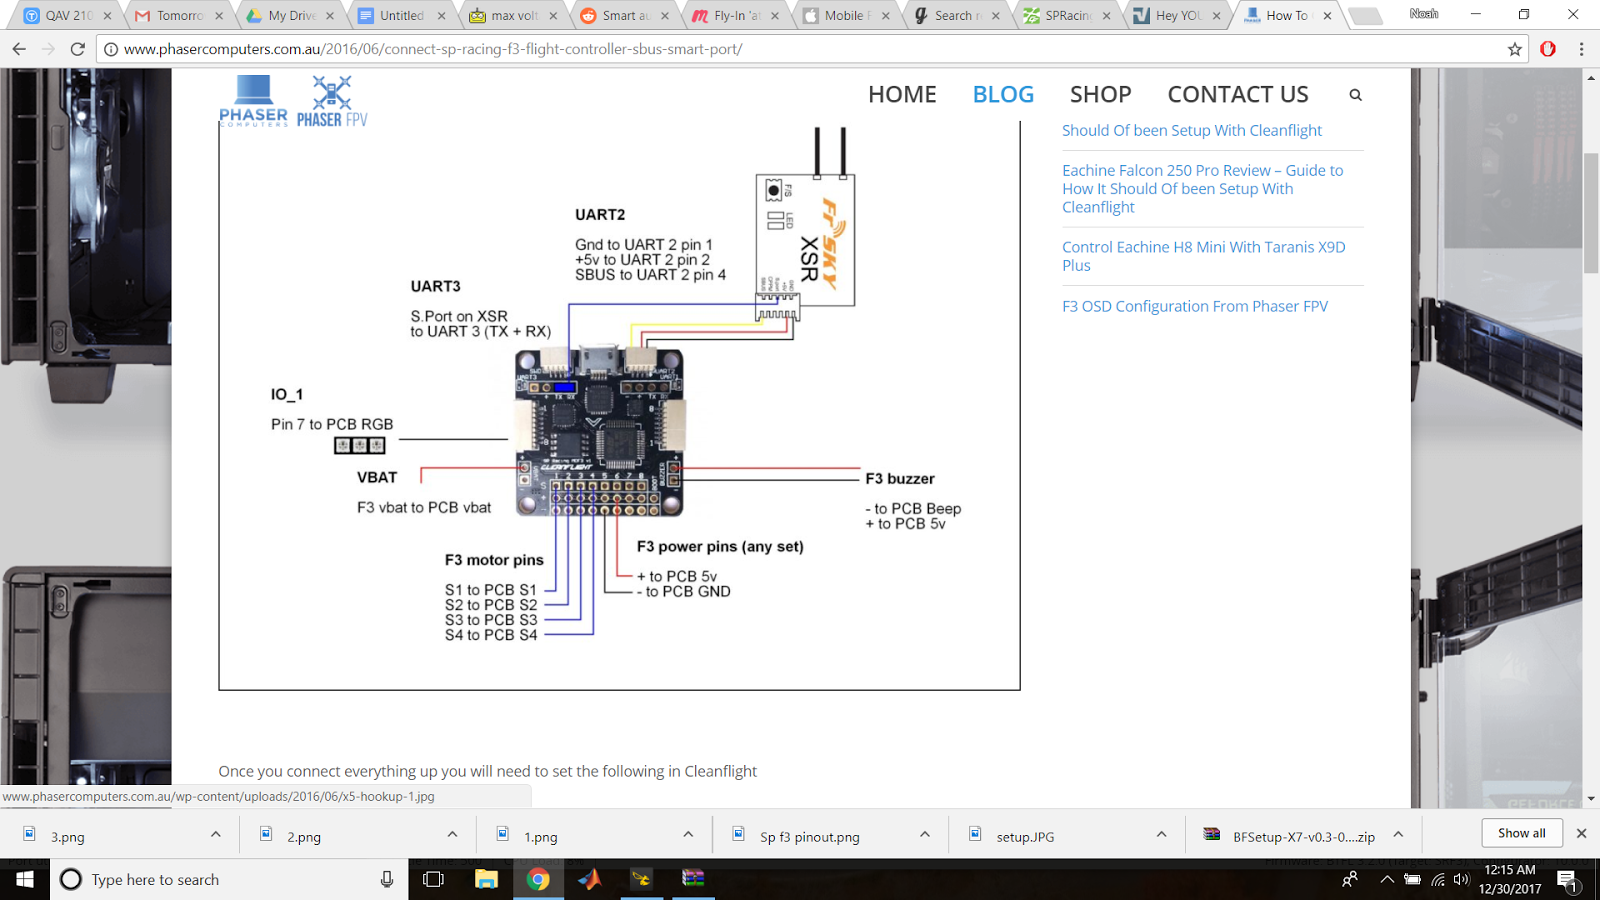 if i don't use io2 as shown above, i thought that i should be able to wire  the vtx to uart1  but again, the pin-out shows that uart1 cannot be used  when